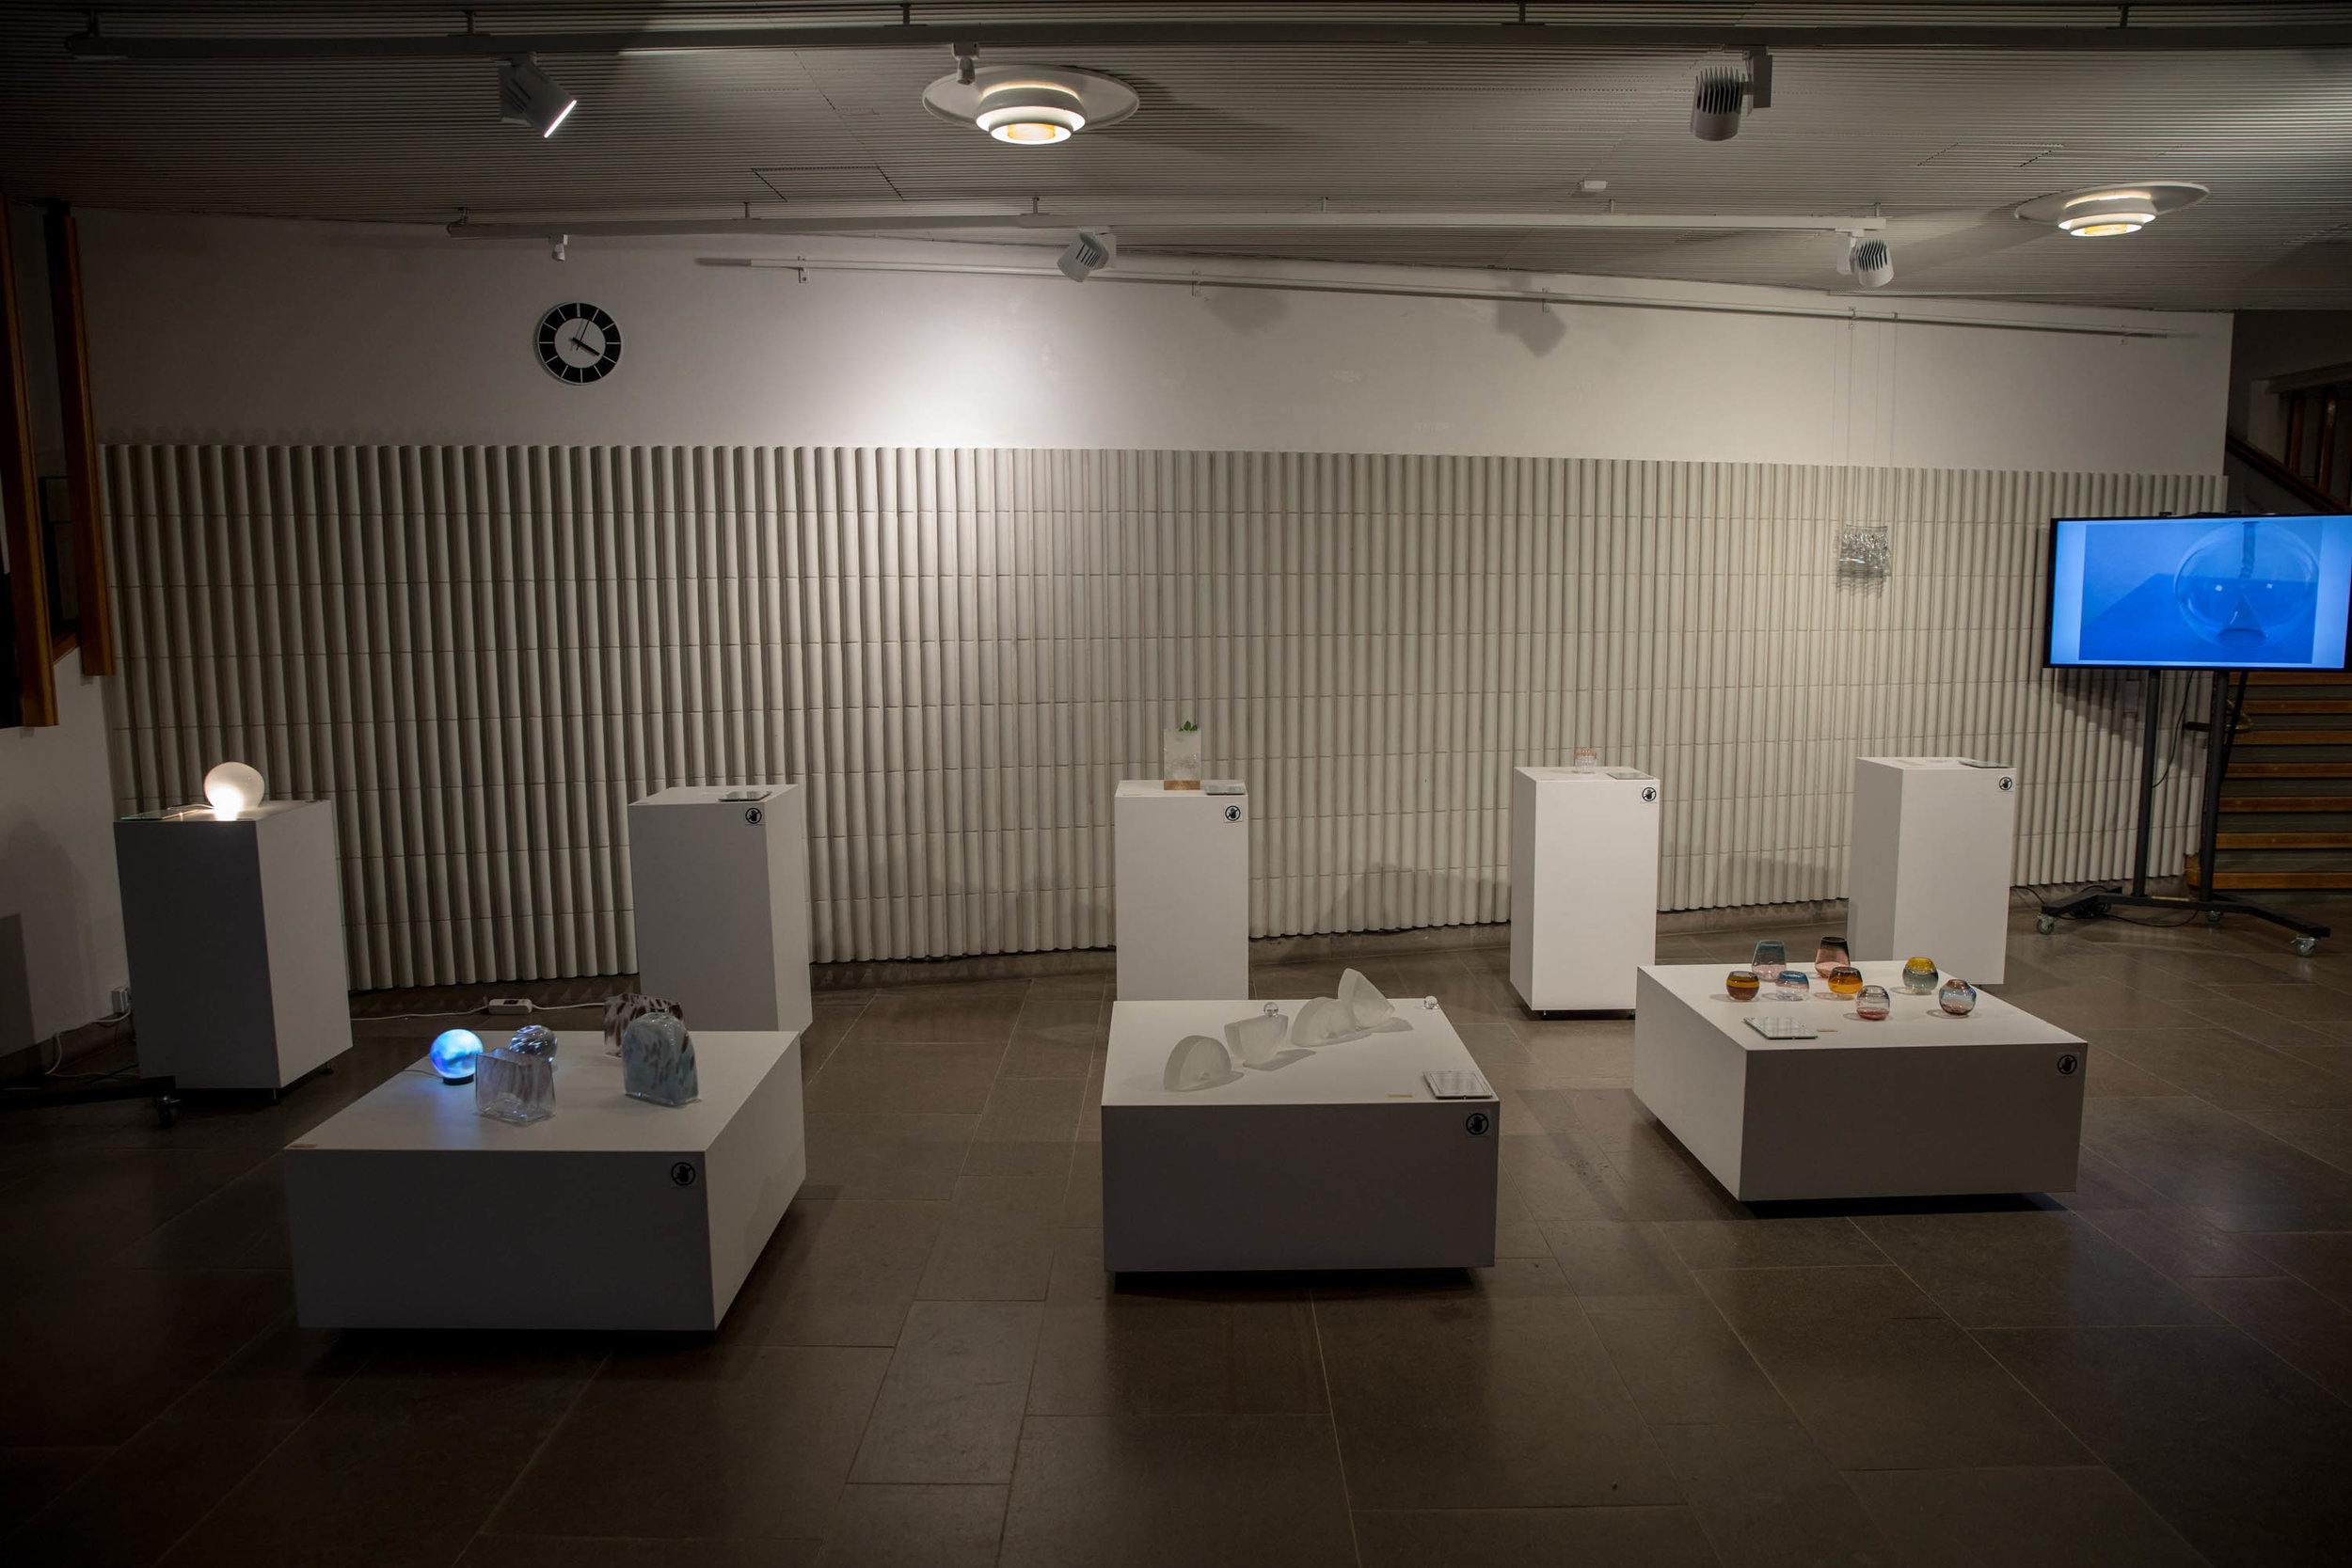 Aalto_LearningCentre_exhibition_Whose-History-Is-It-Anyway_29-1-2018_photo_Mikko_Raskinen_044.jpg